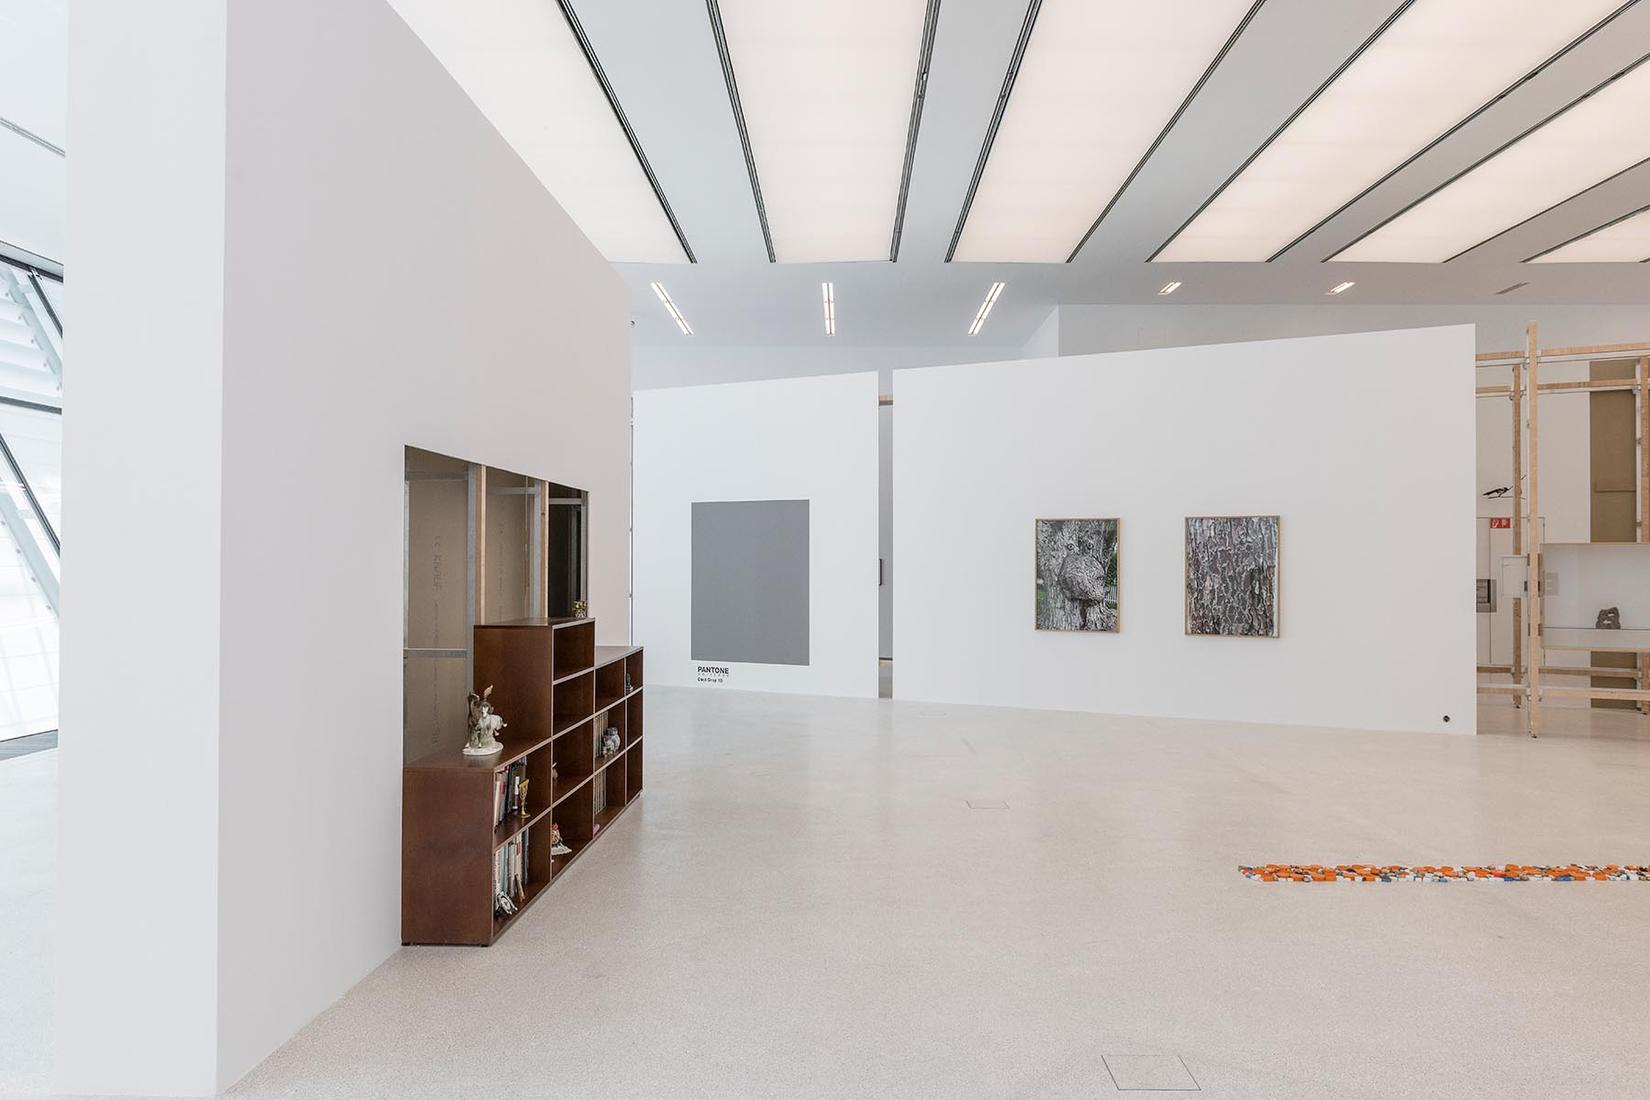 This is an installation image of Haim Steinbach's...